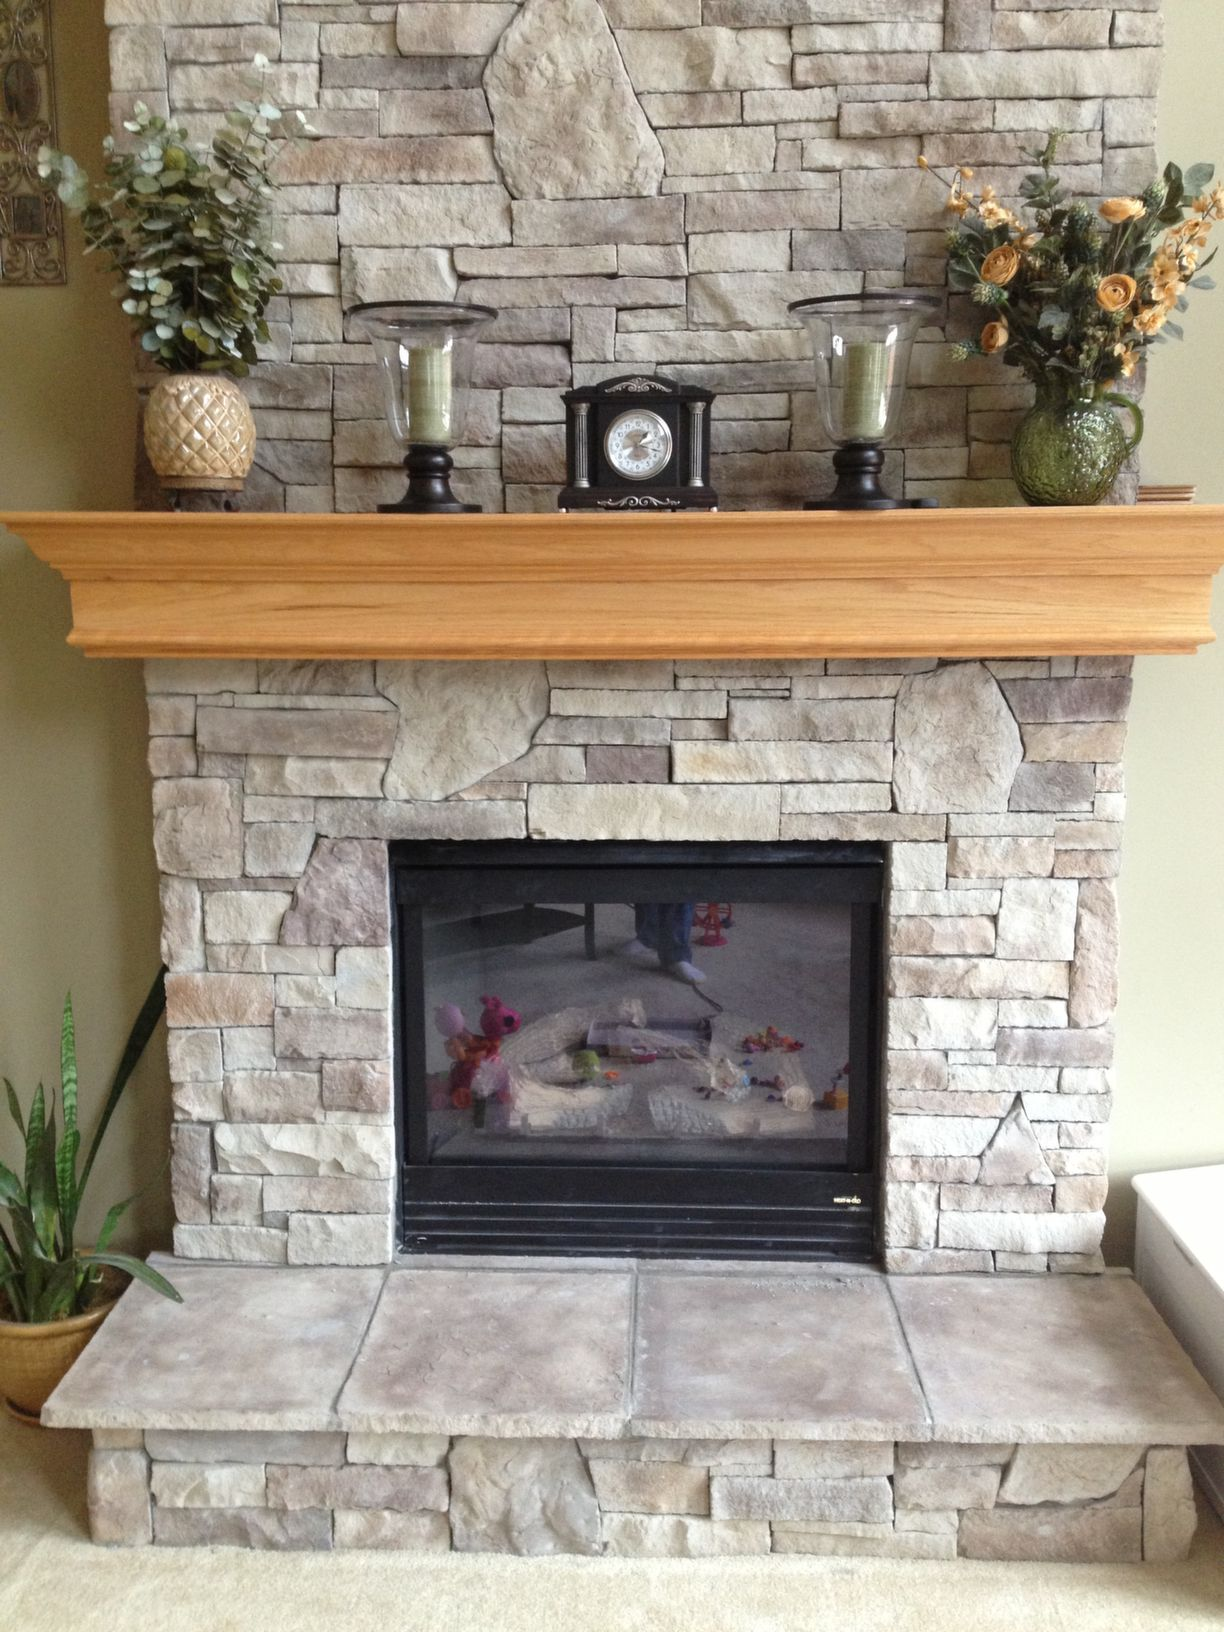 North Star Stone offers a wide range of stone for fireplaces with